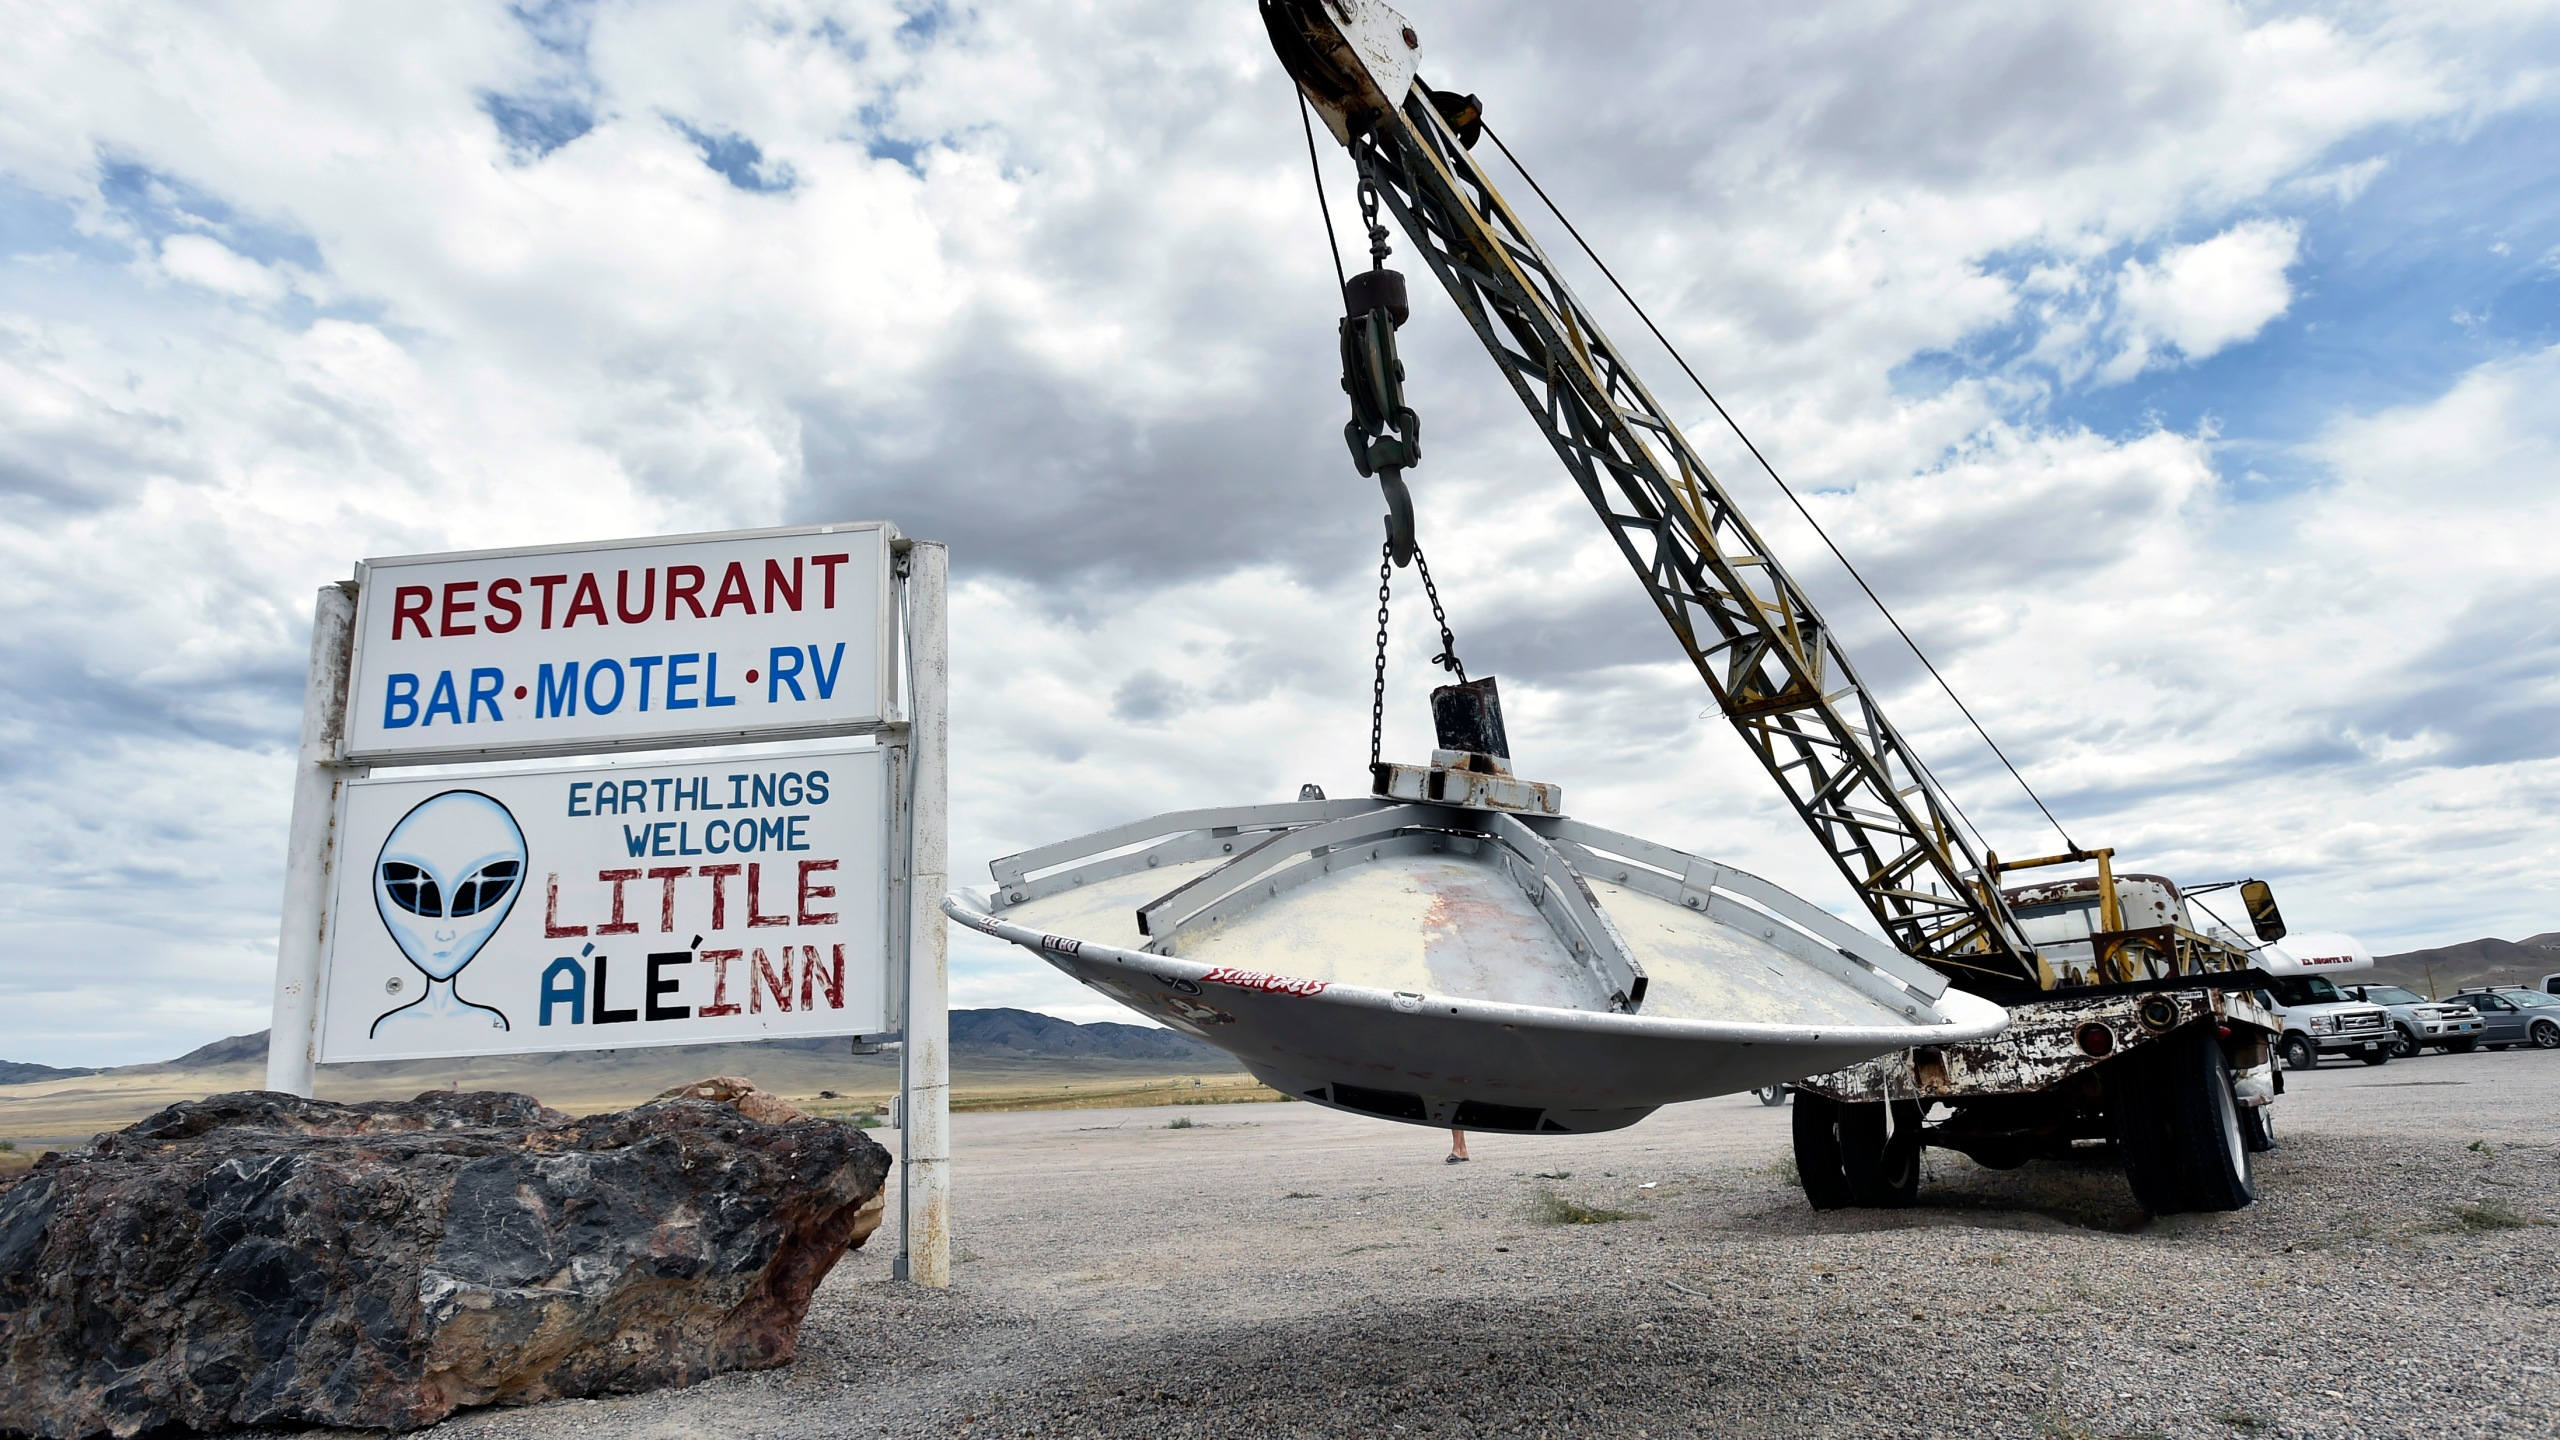 Roadside artwork featuring a tow truck and a flying saucer is displayed at the Little A'le' Inn restaurant and gift shop on July 22, 2019, in Rachel, Nevada. (Credit: David Becker/Getty Images)